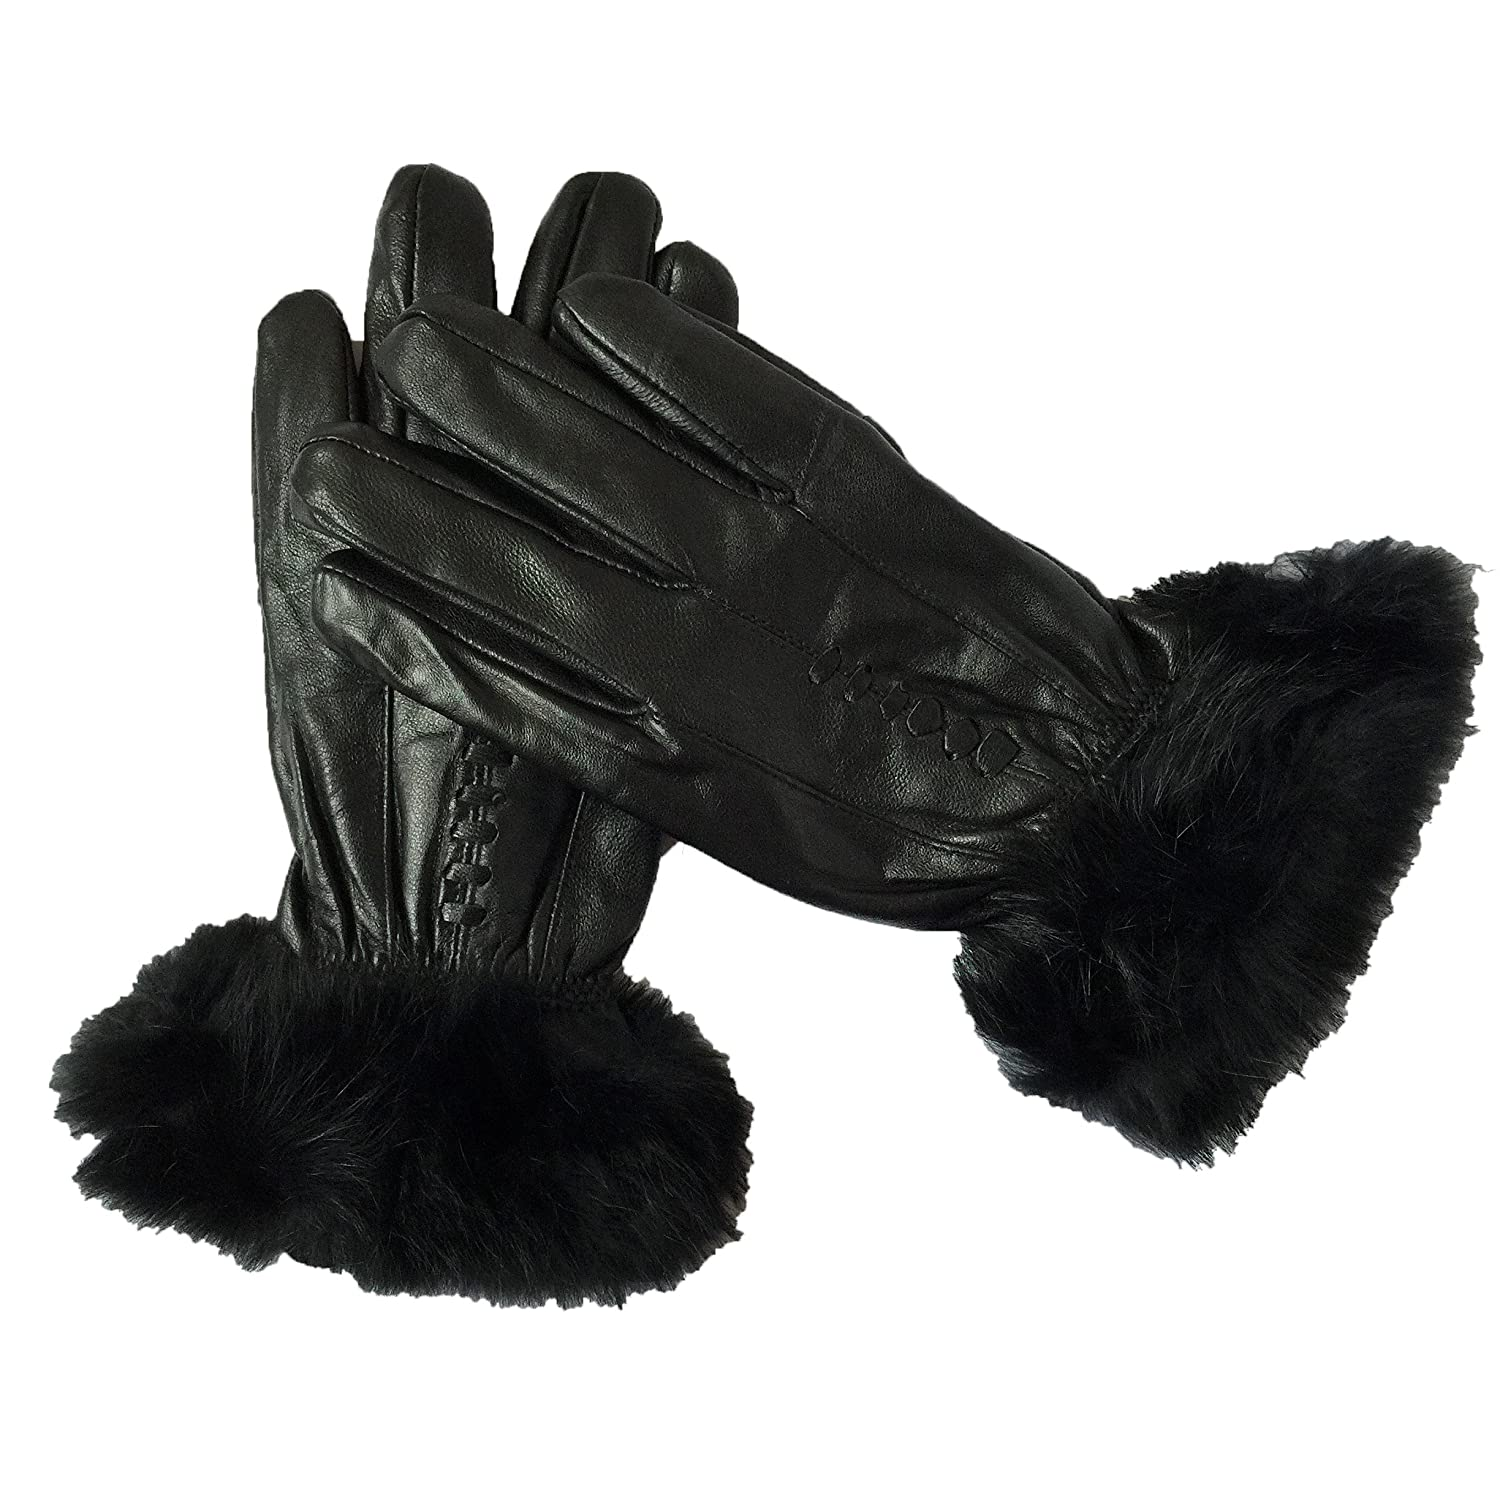 Ladies leather gloves with thinsulate - Ladies Genuine Leather Gloves Thinsulate Fleece Lined Driving Soft Winter Warm Touch Screen X Large Amazon Co Uk Clothing